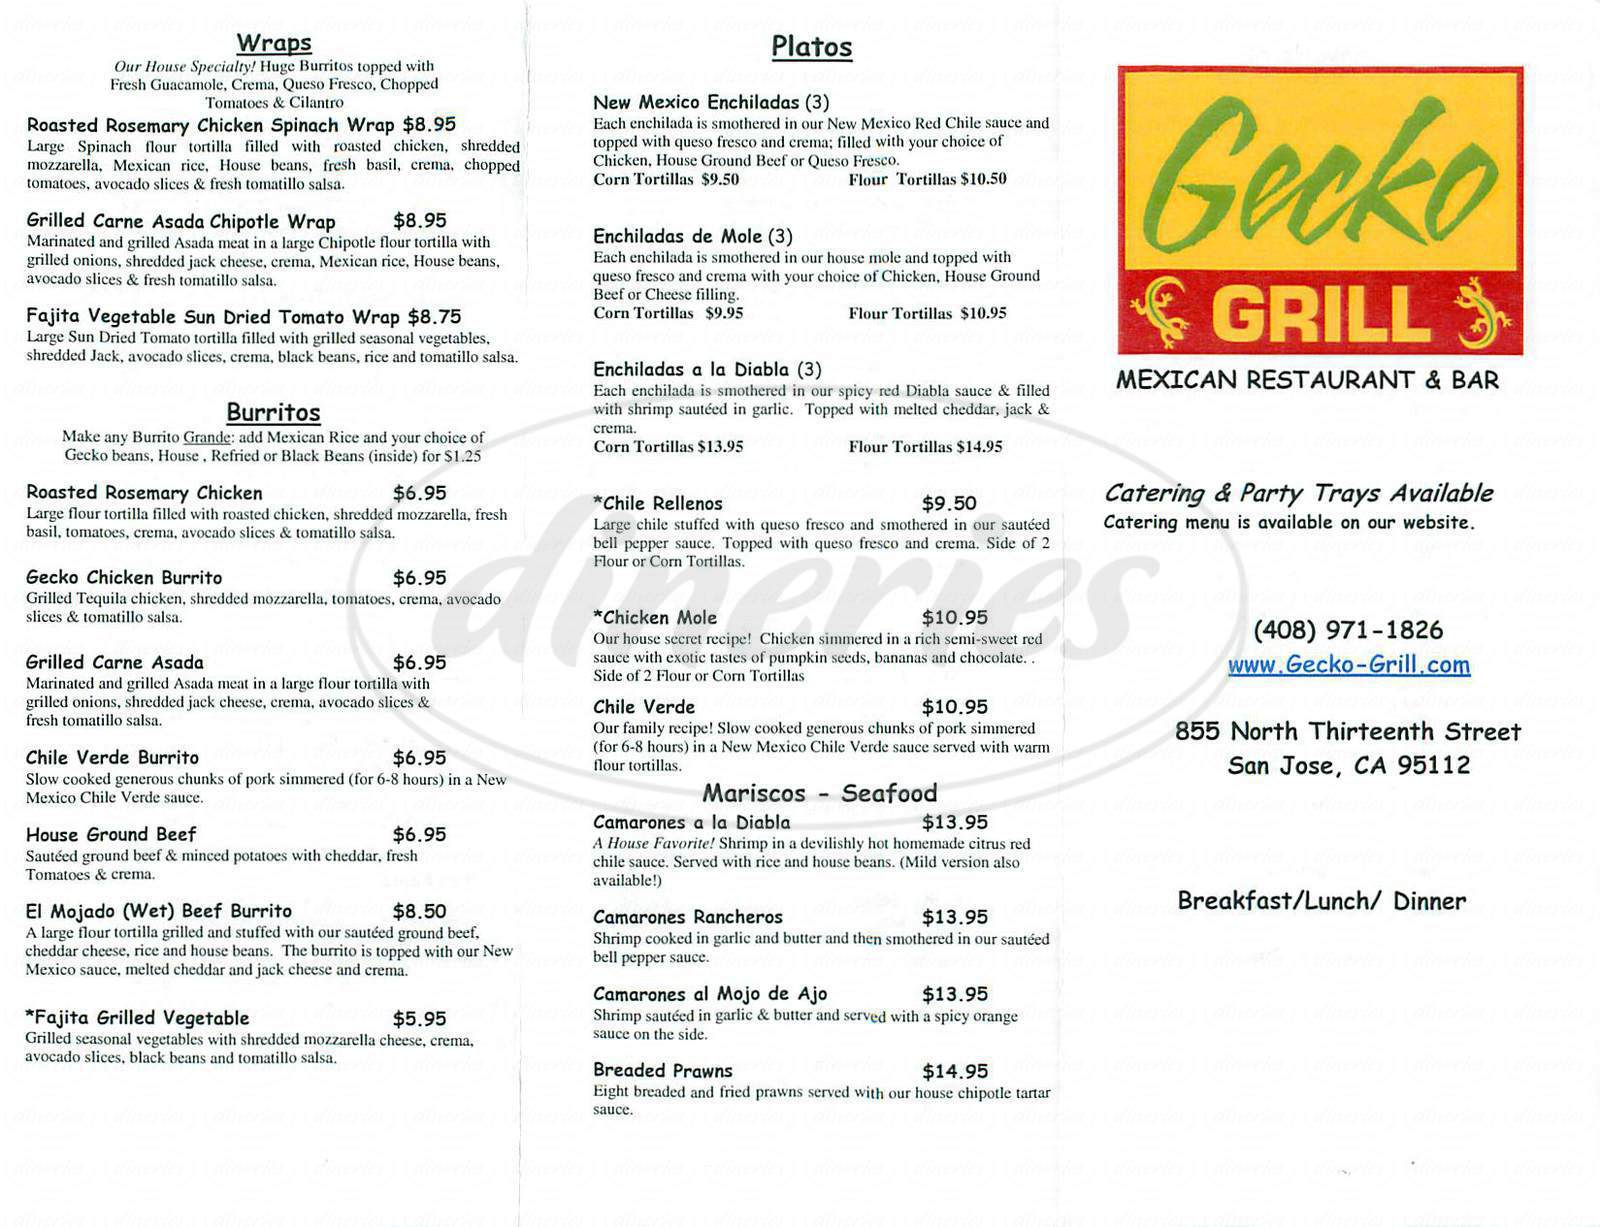 menu for Gecko Grill